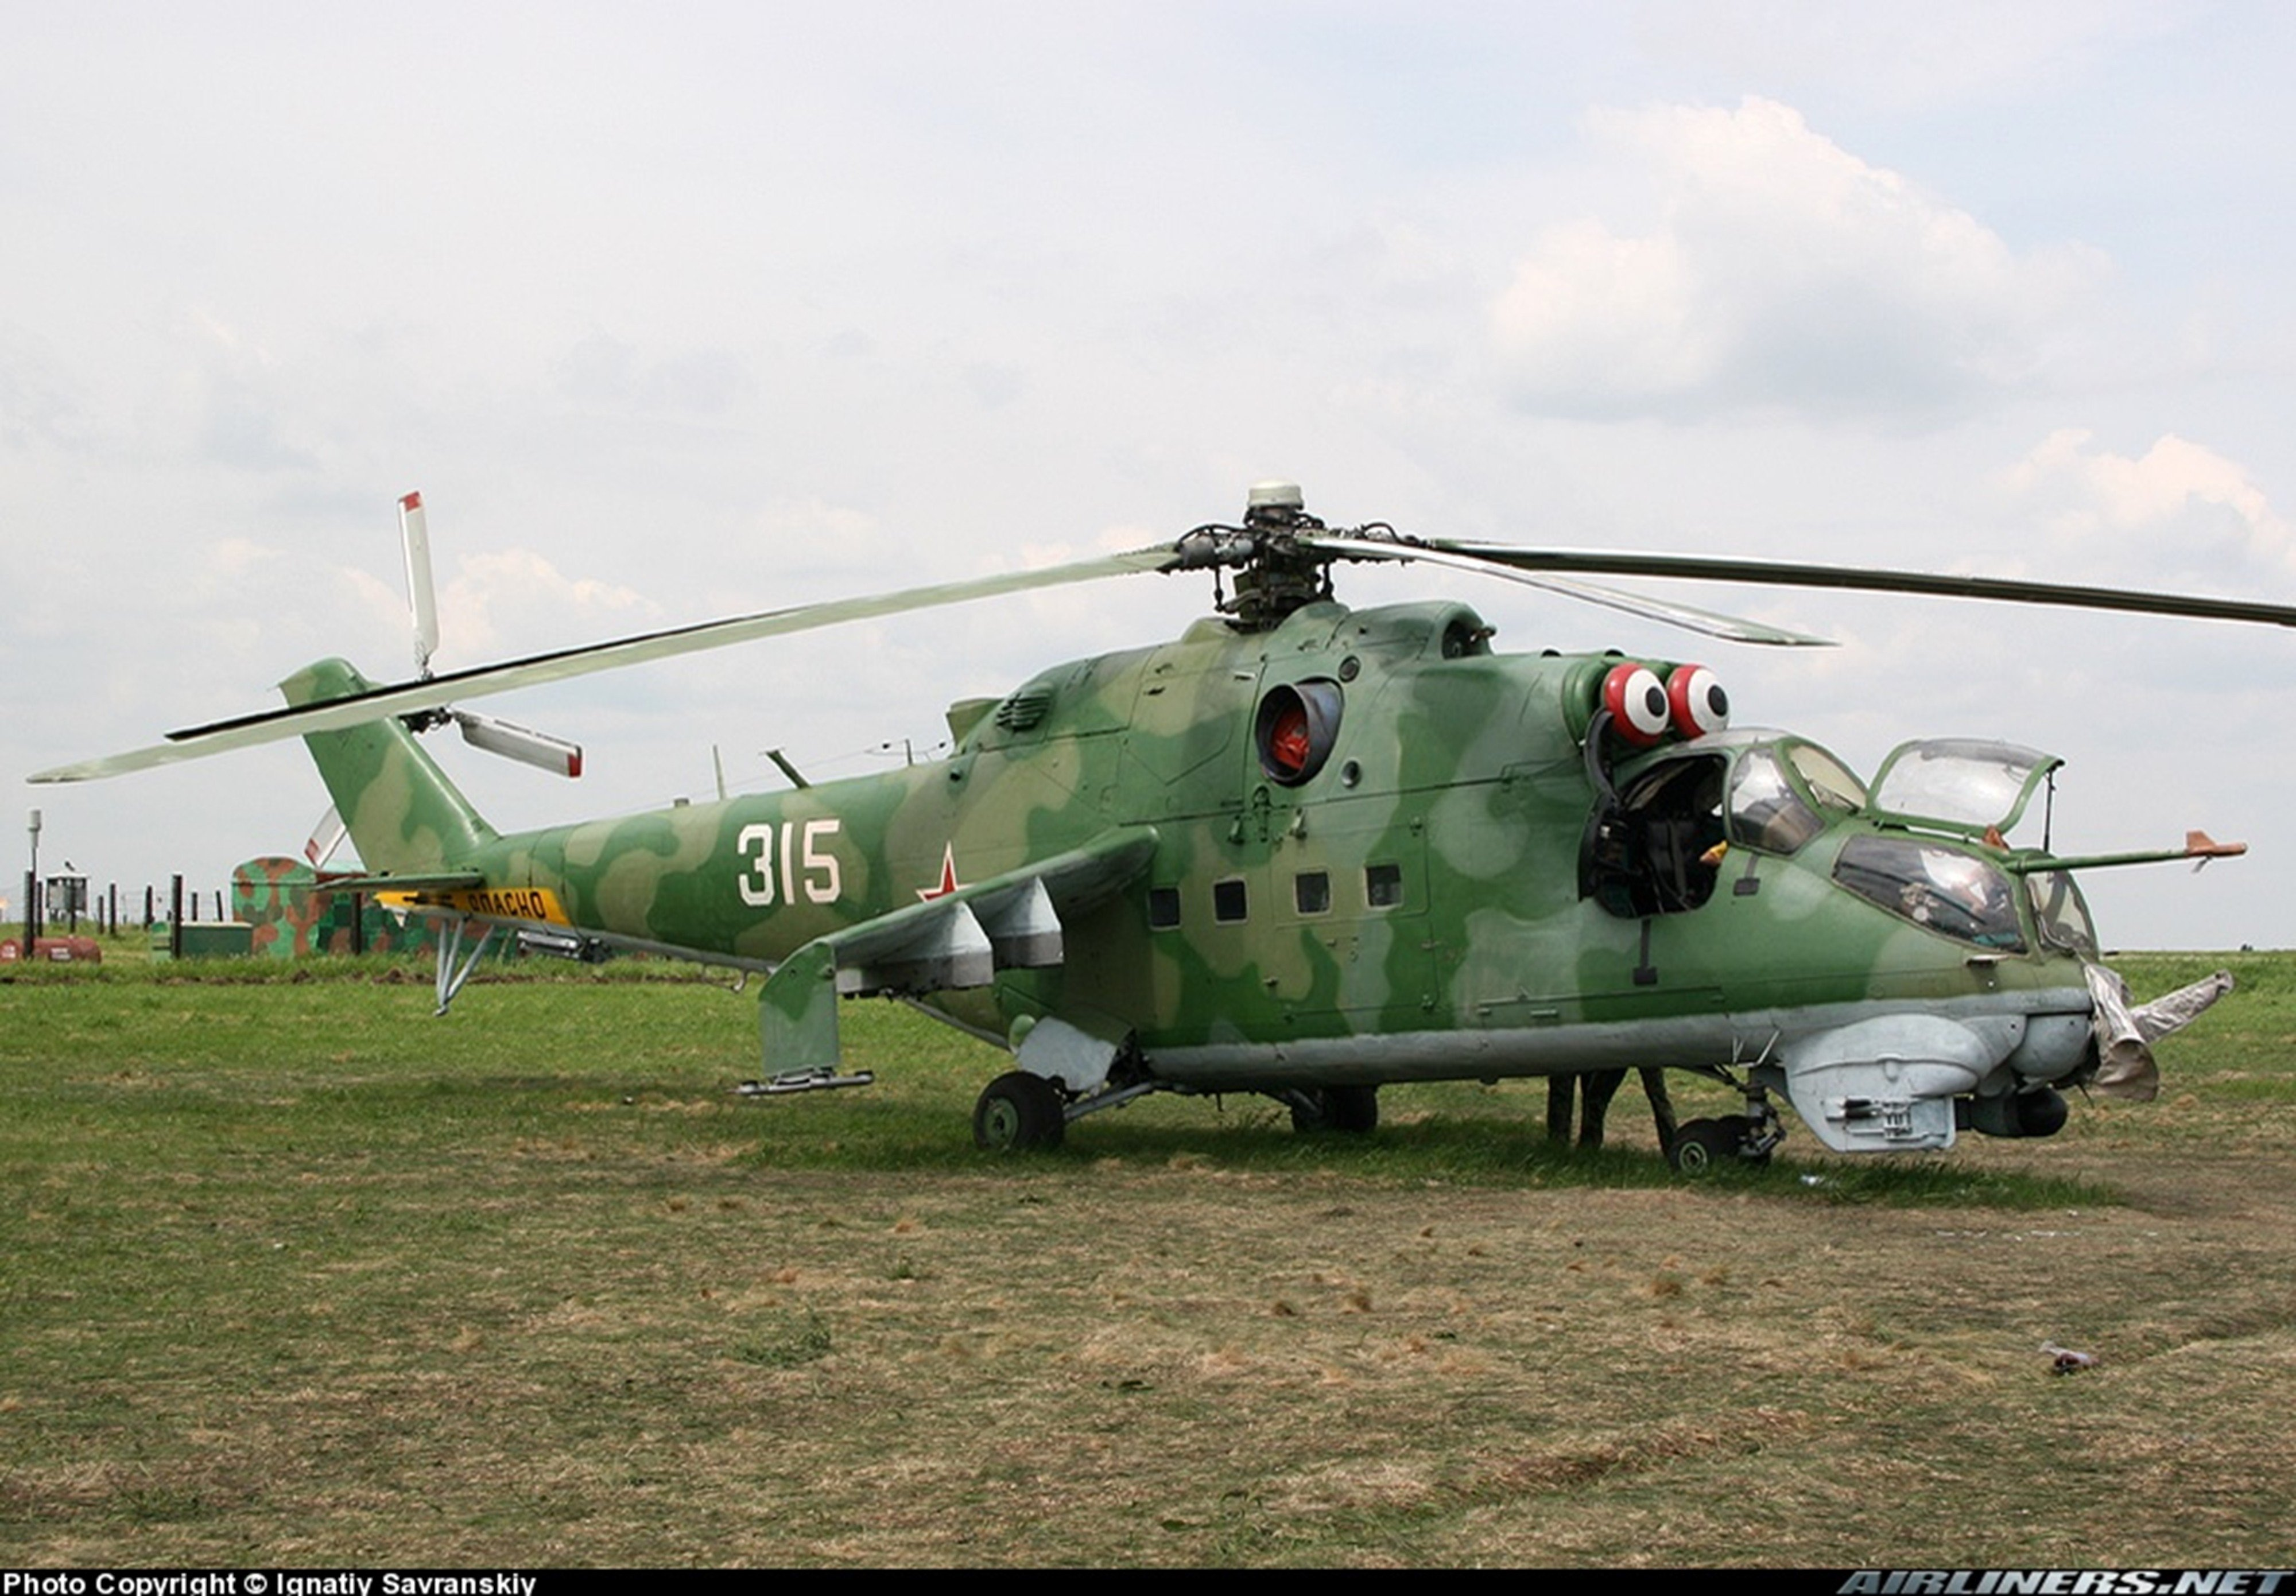 russian red star Russia helicopter aircraft mil-mi attack military army